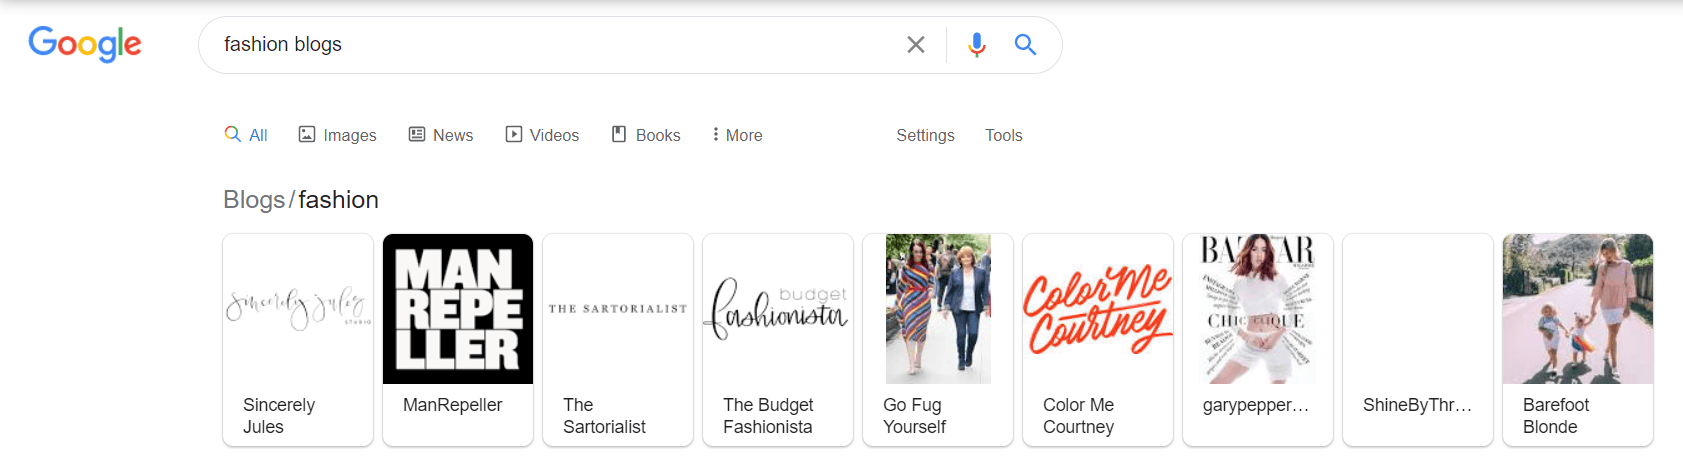 Fashion blogs search